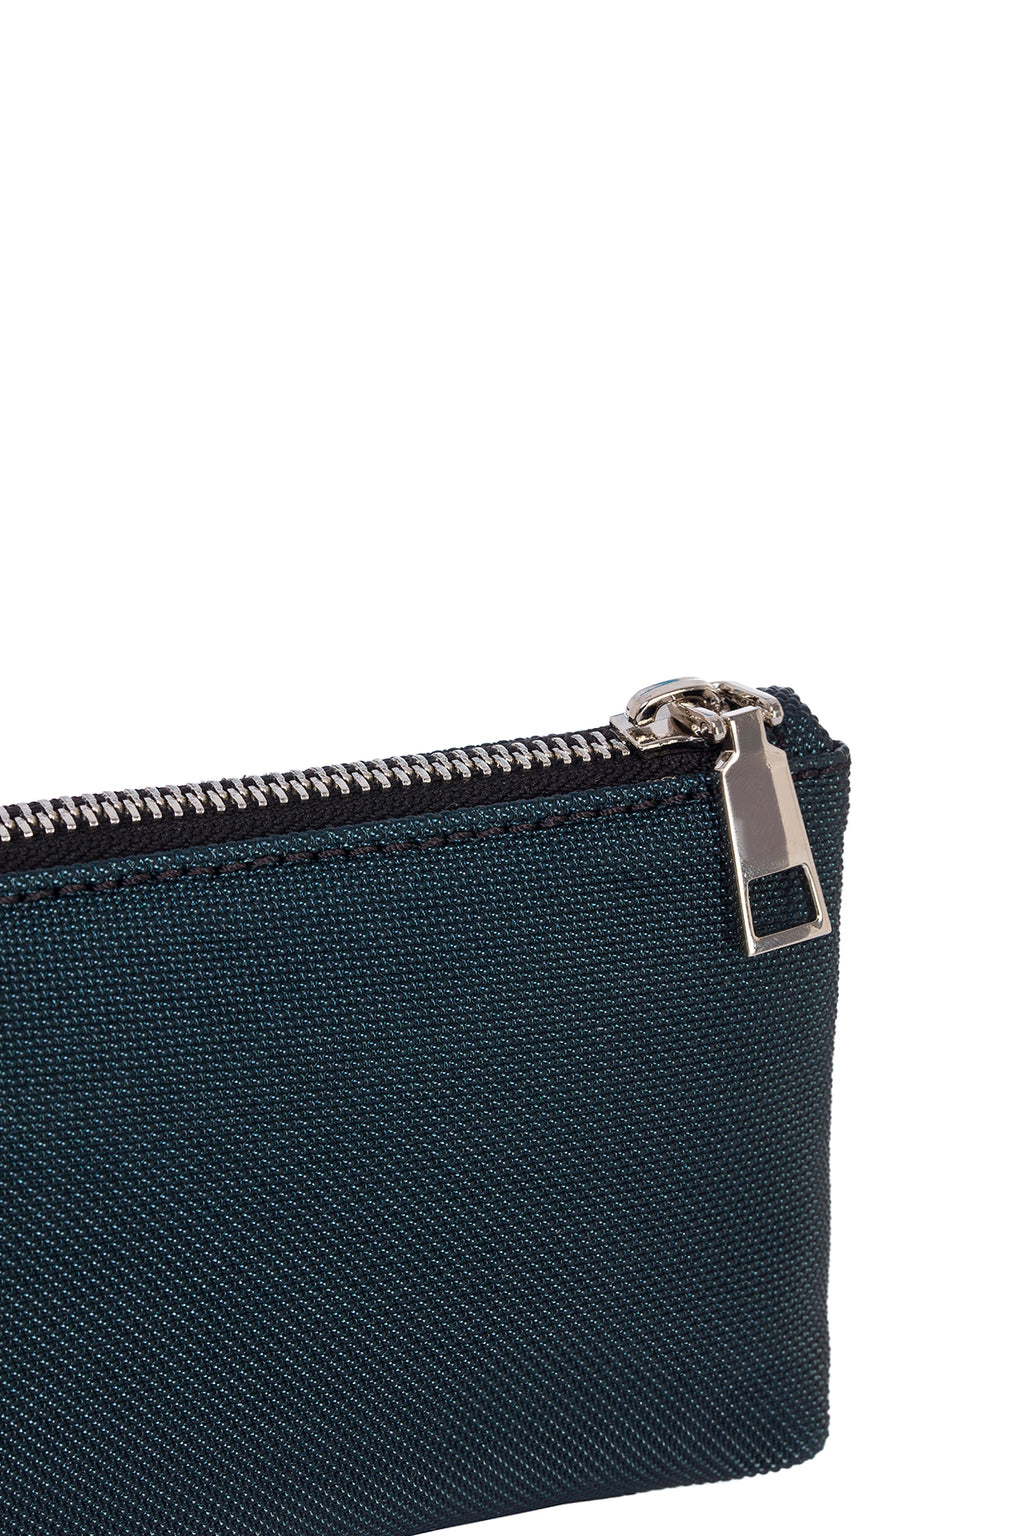 U-hide <br> Inner Pouch <br> Small - Emerald Green